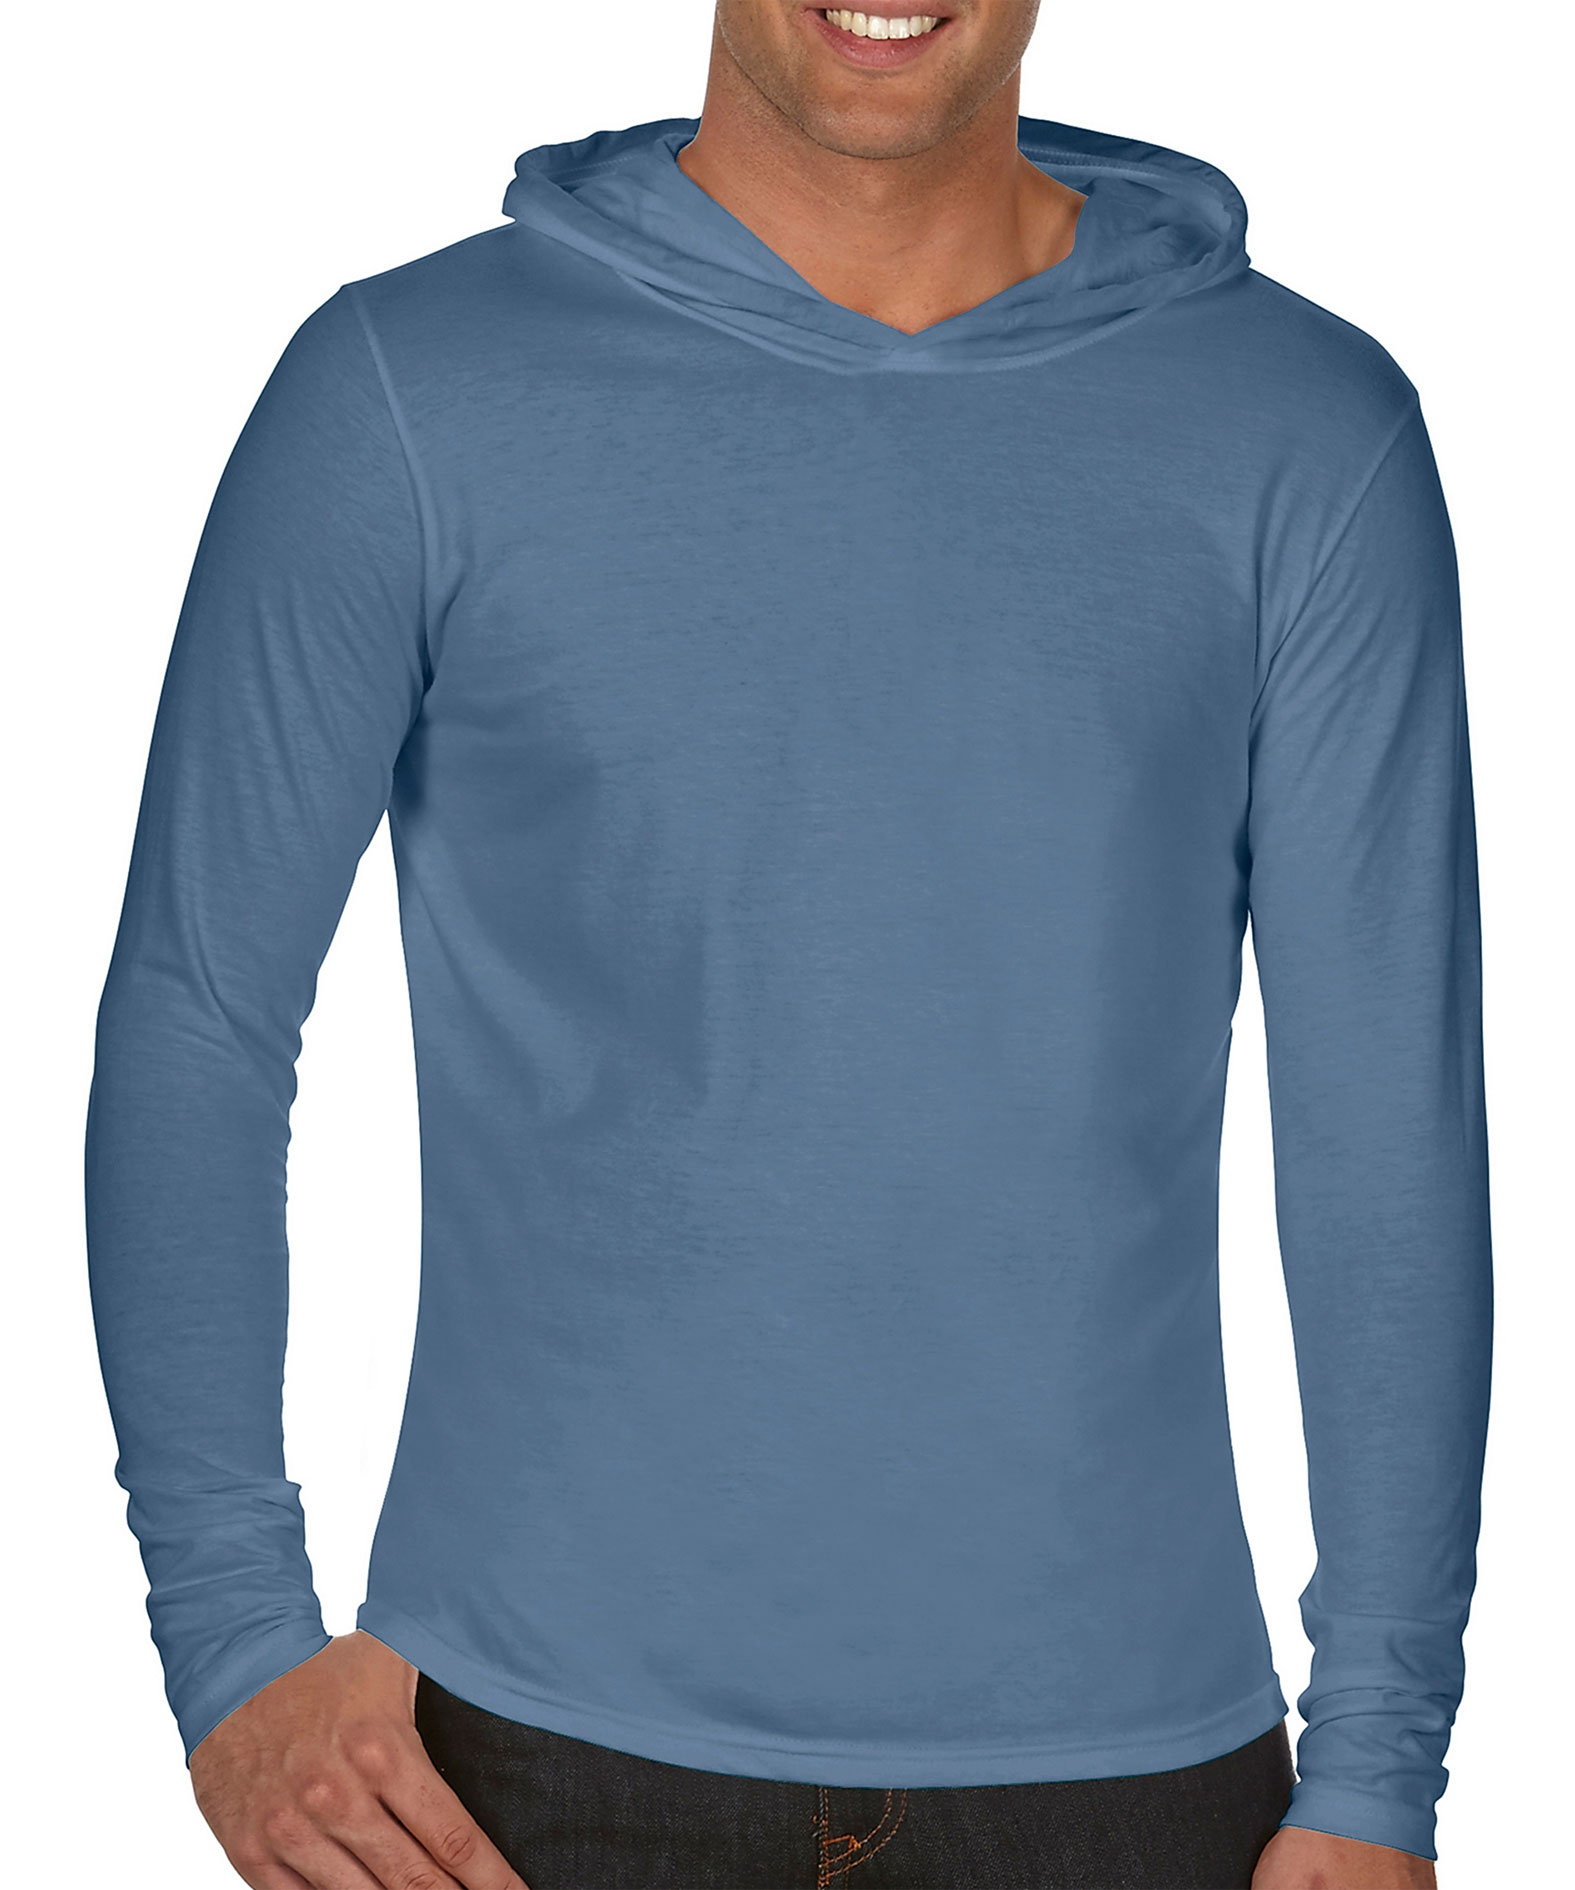 Comfort Colors Adult Long-Sleeve Hooded T-Shirt